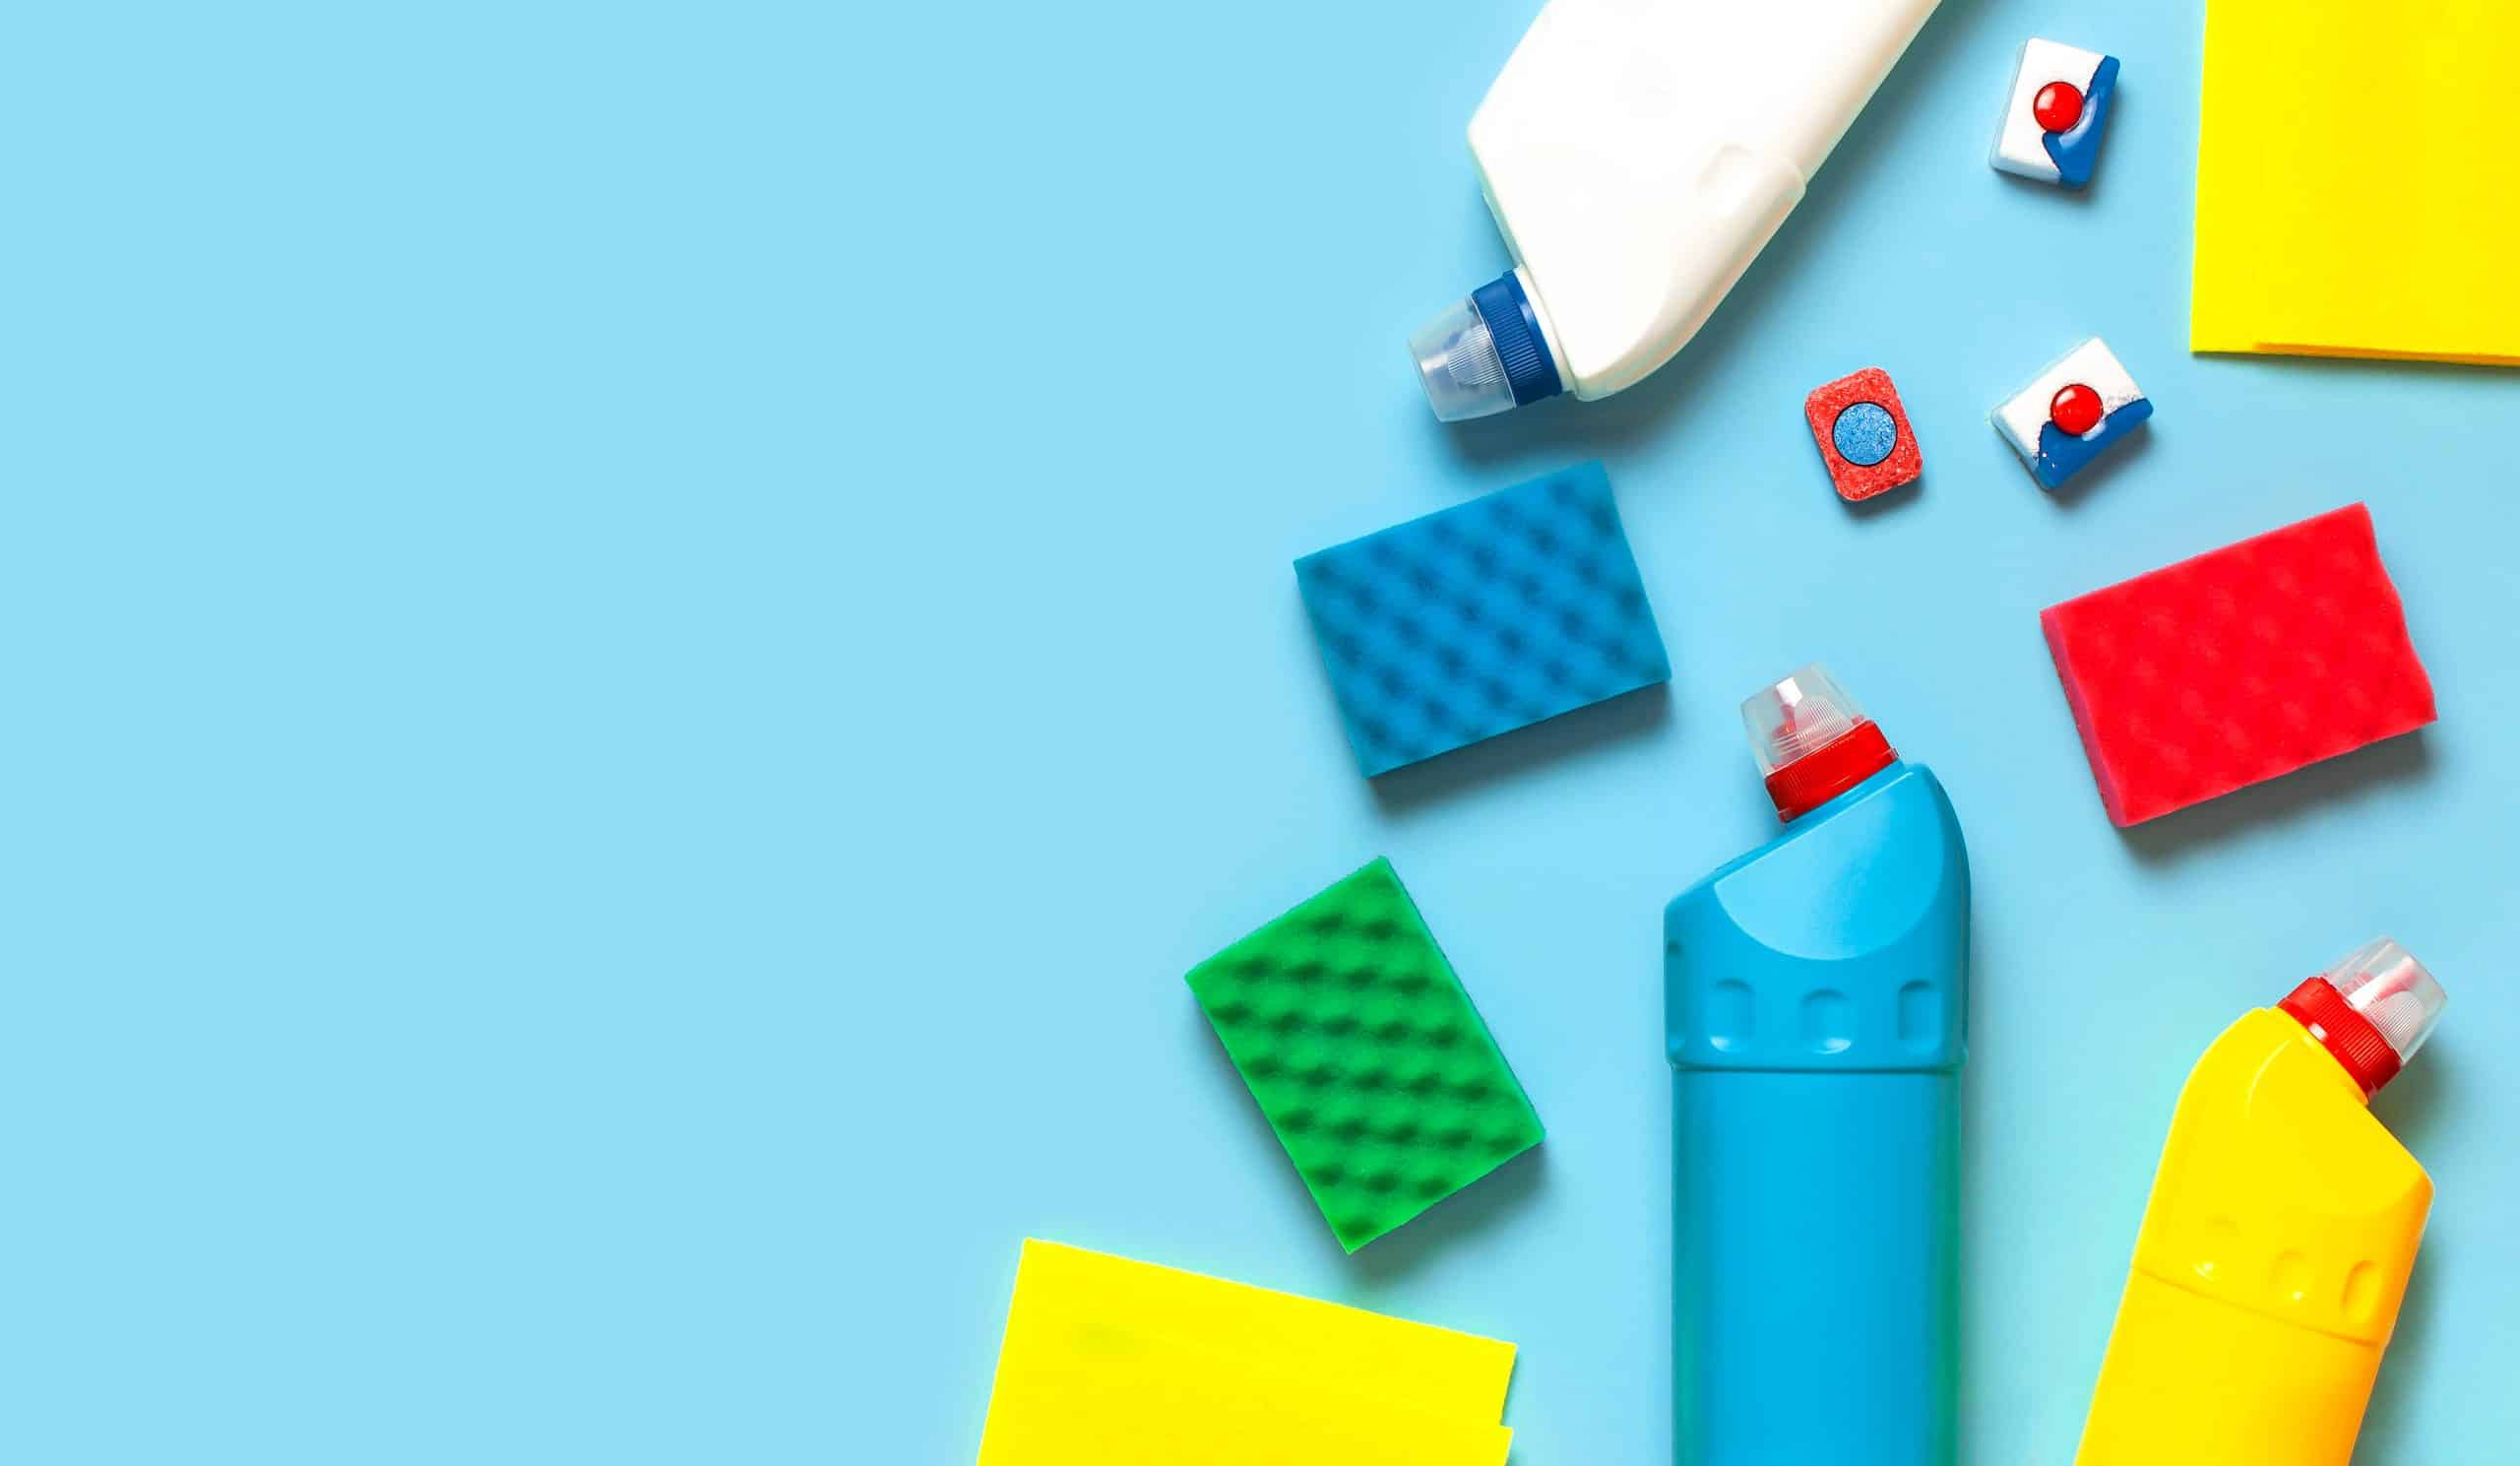 Household chemicals, disinfectant, bleach, antibacterial gel, yellow rubber gloves, sponge, rags, dishwasher tablets on blue background.